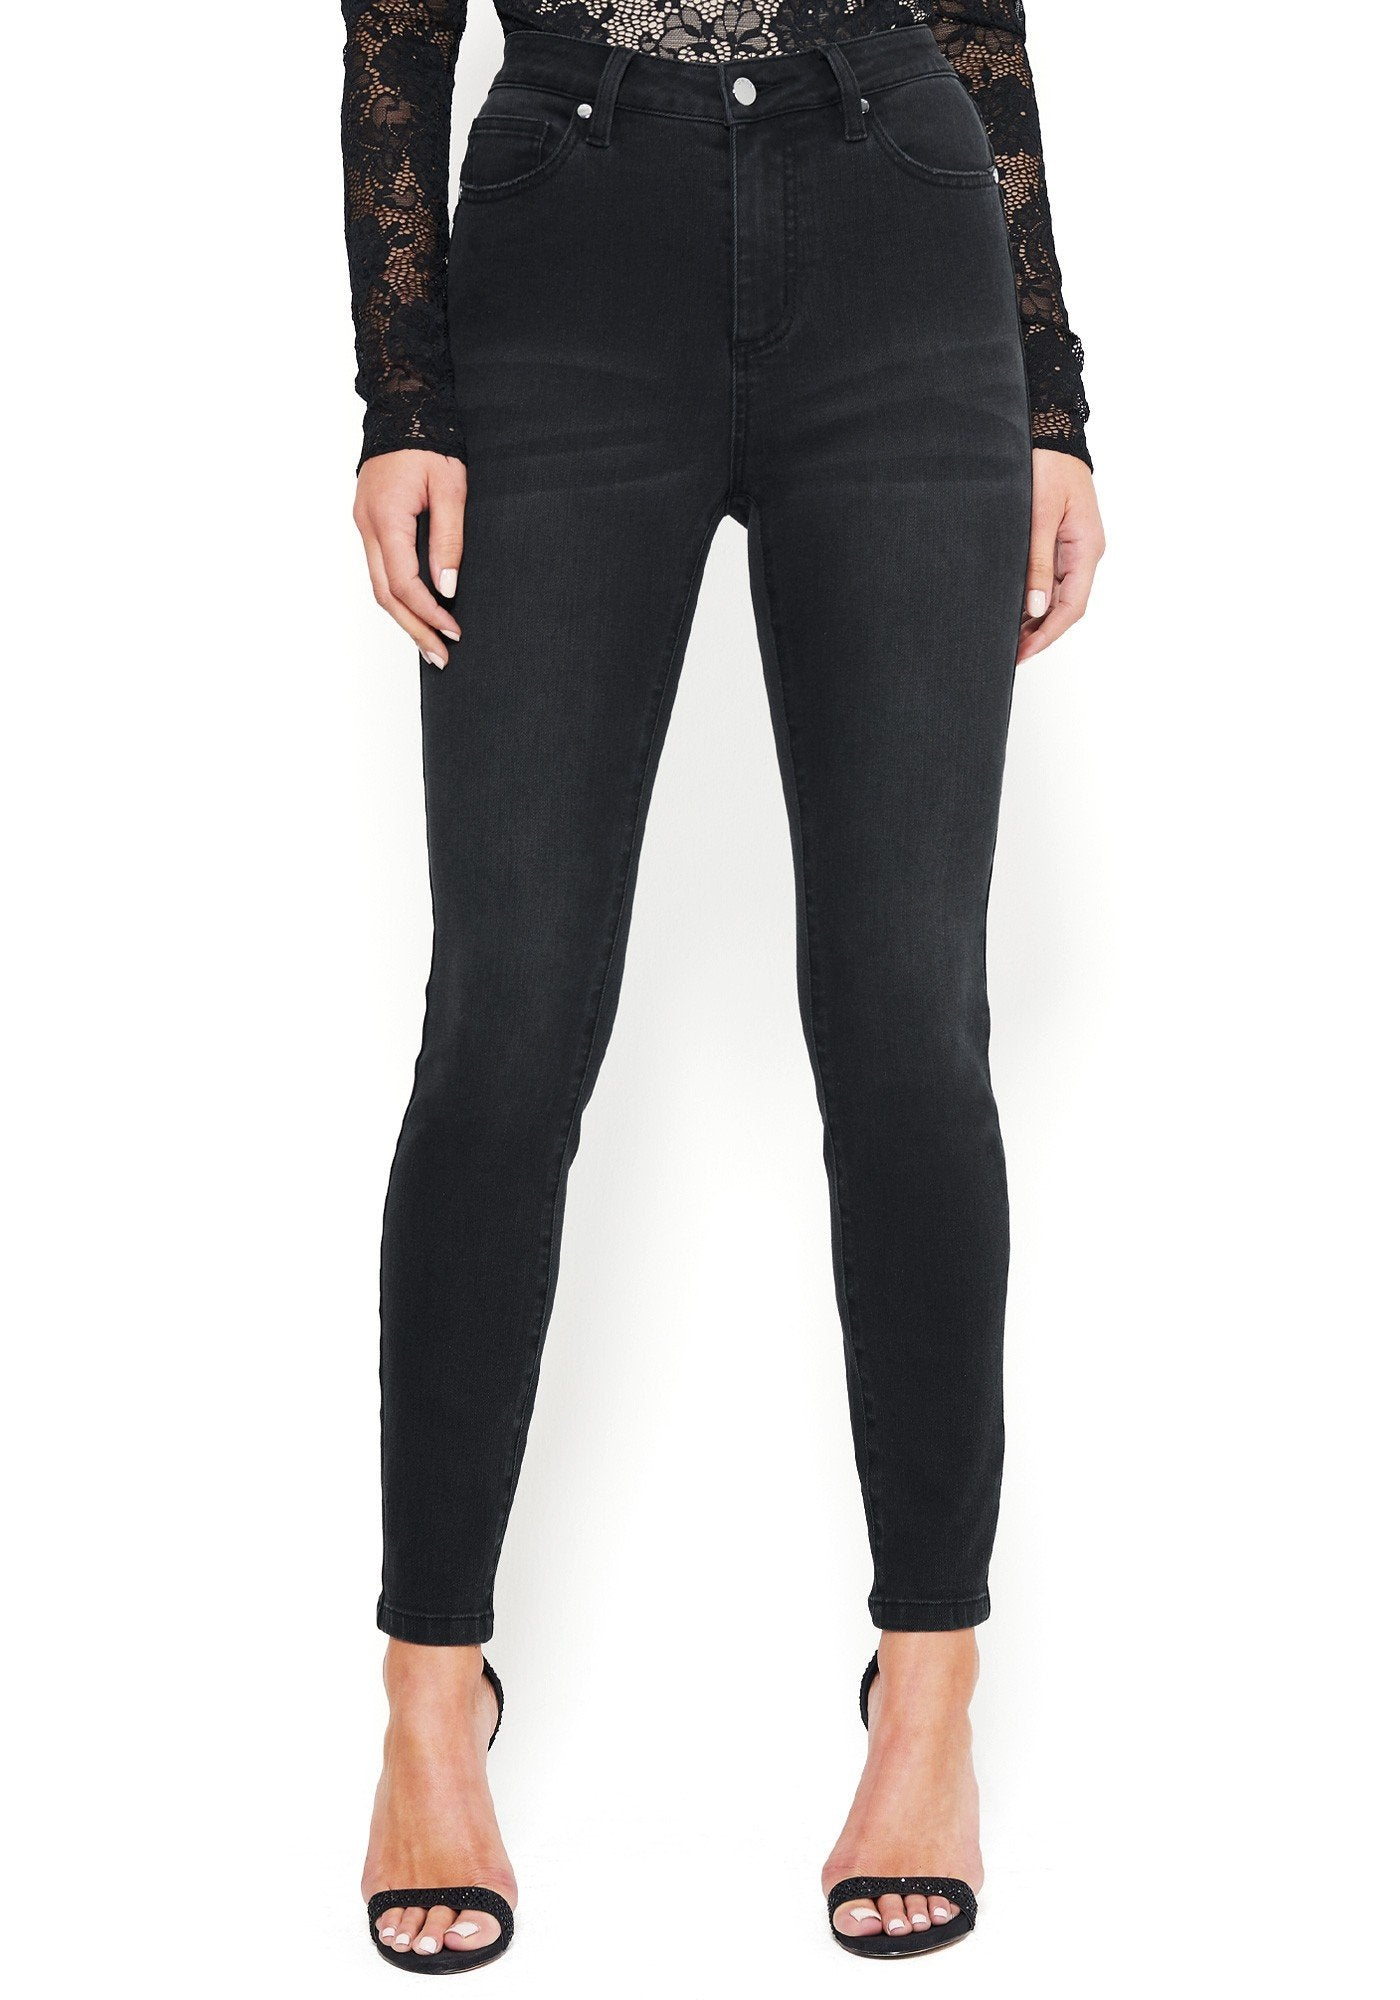 Bebe Women's Back V-Stitch Skinny Jeans, Size 25 in Black Cotton/Spandex